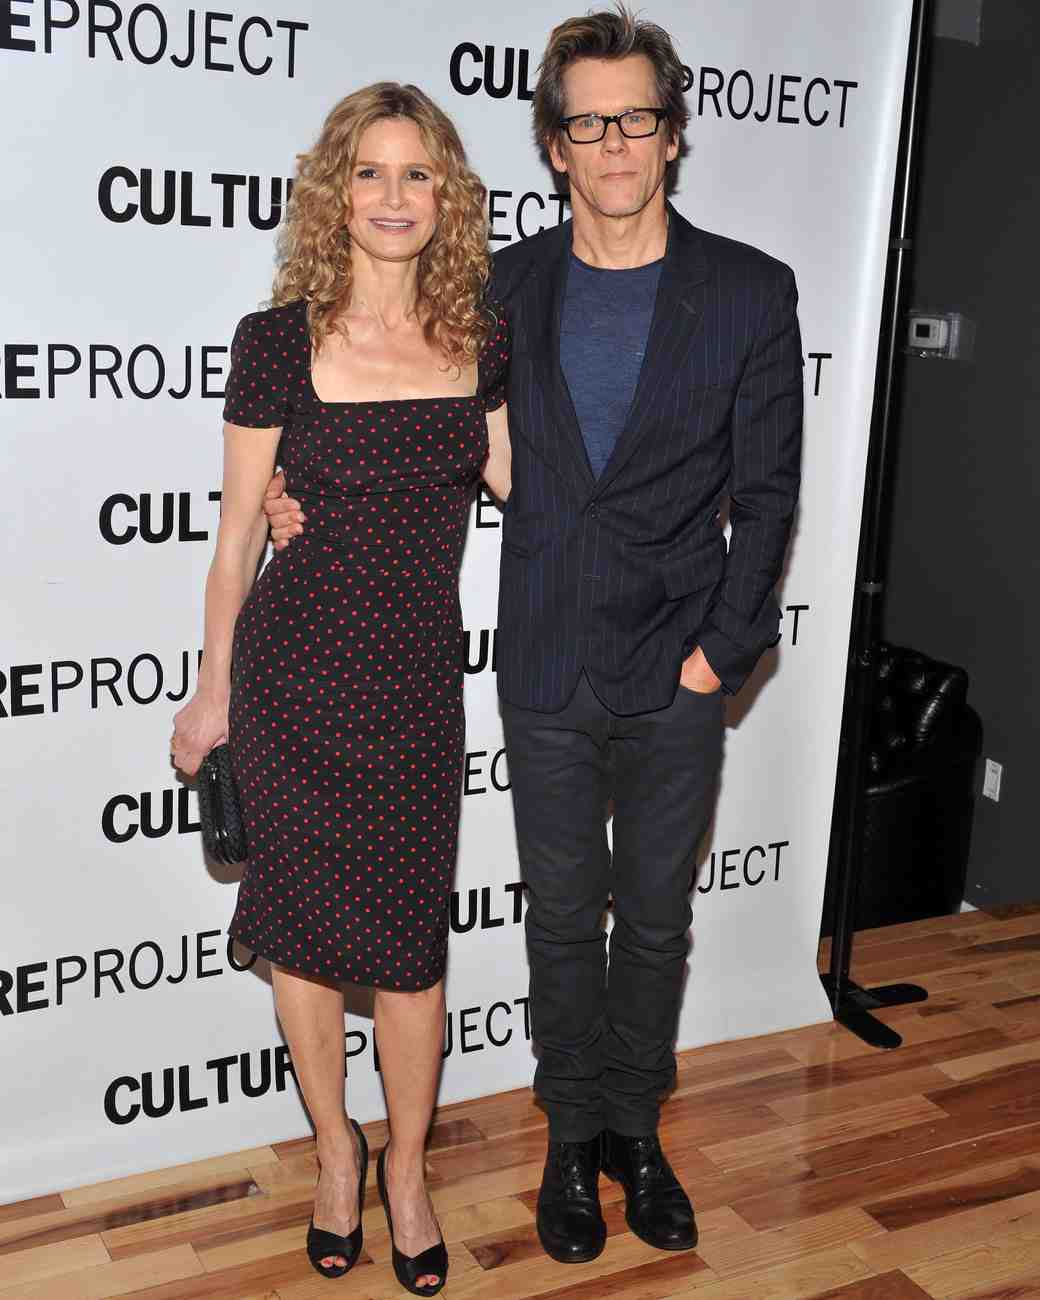 kyra-sedgwick-kevin-bacon-iconic-hollywood-couples-0216.jpg